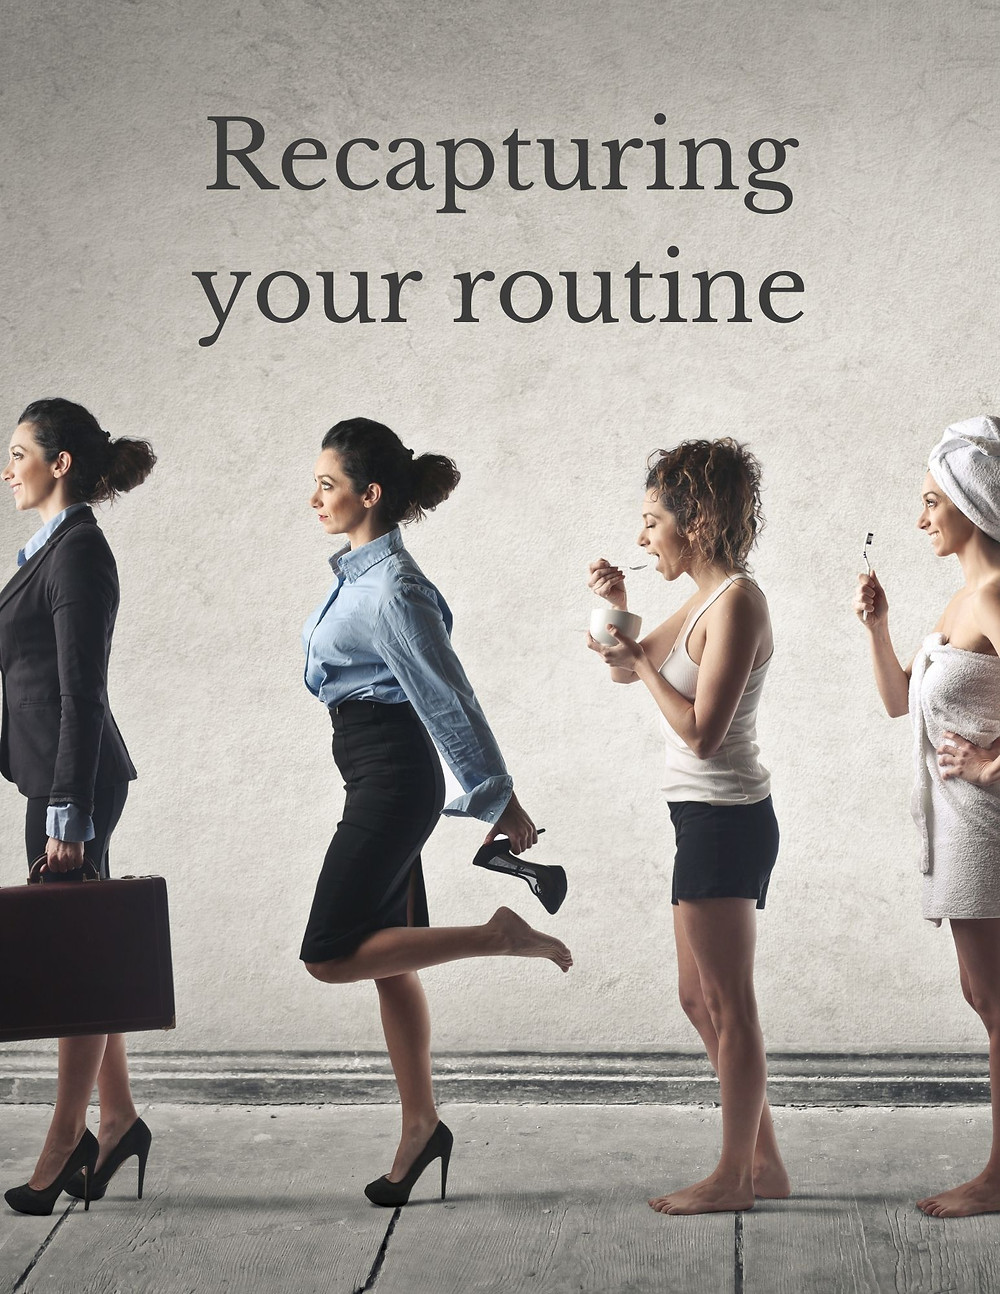 Recapturing your routine